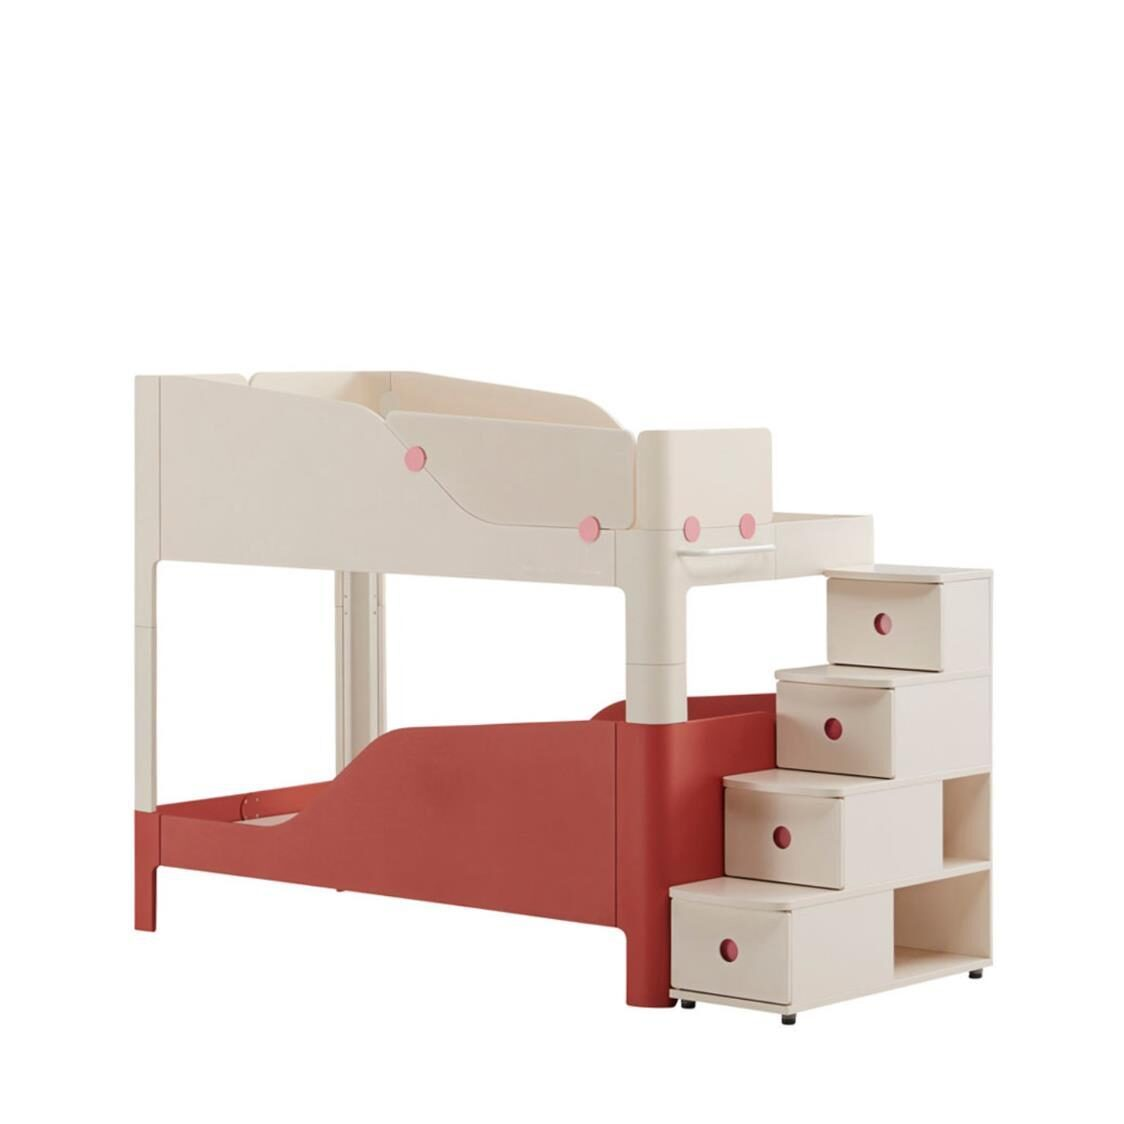 Iloom Tinkle Pop 2 Story Bed Stairs IVKR Ivory Red